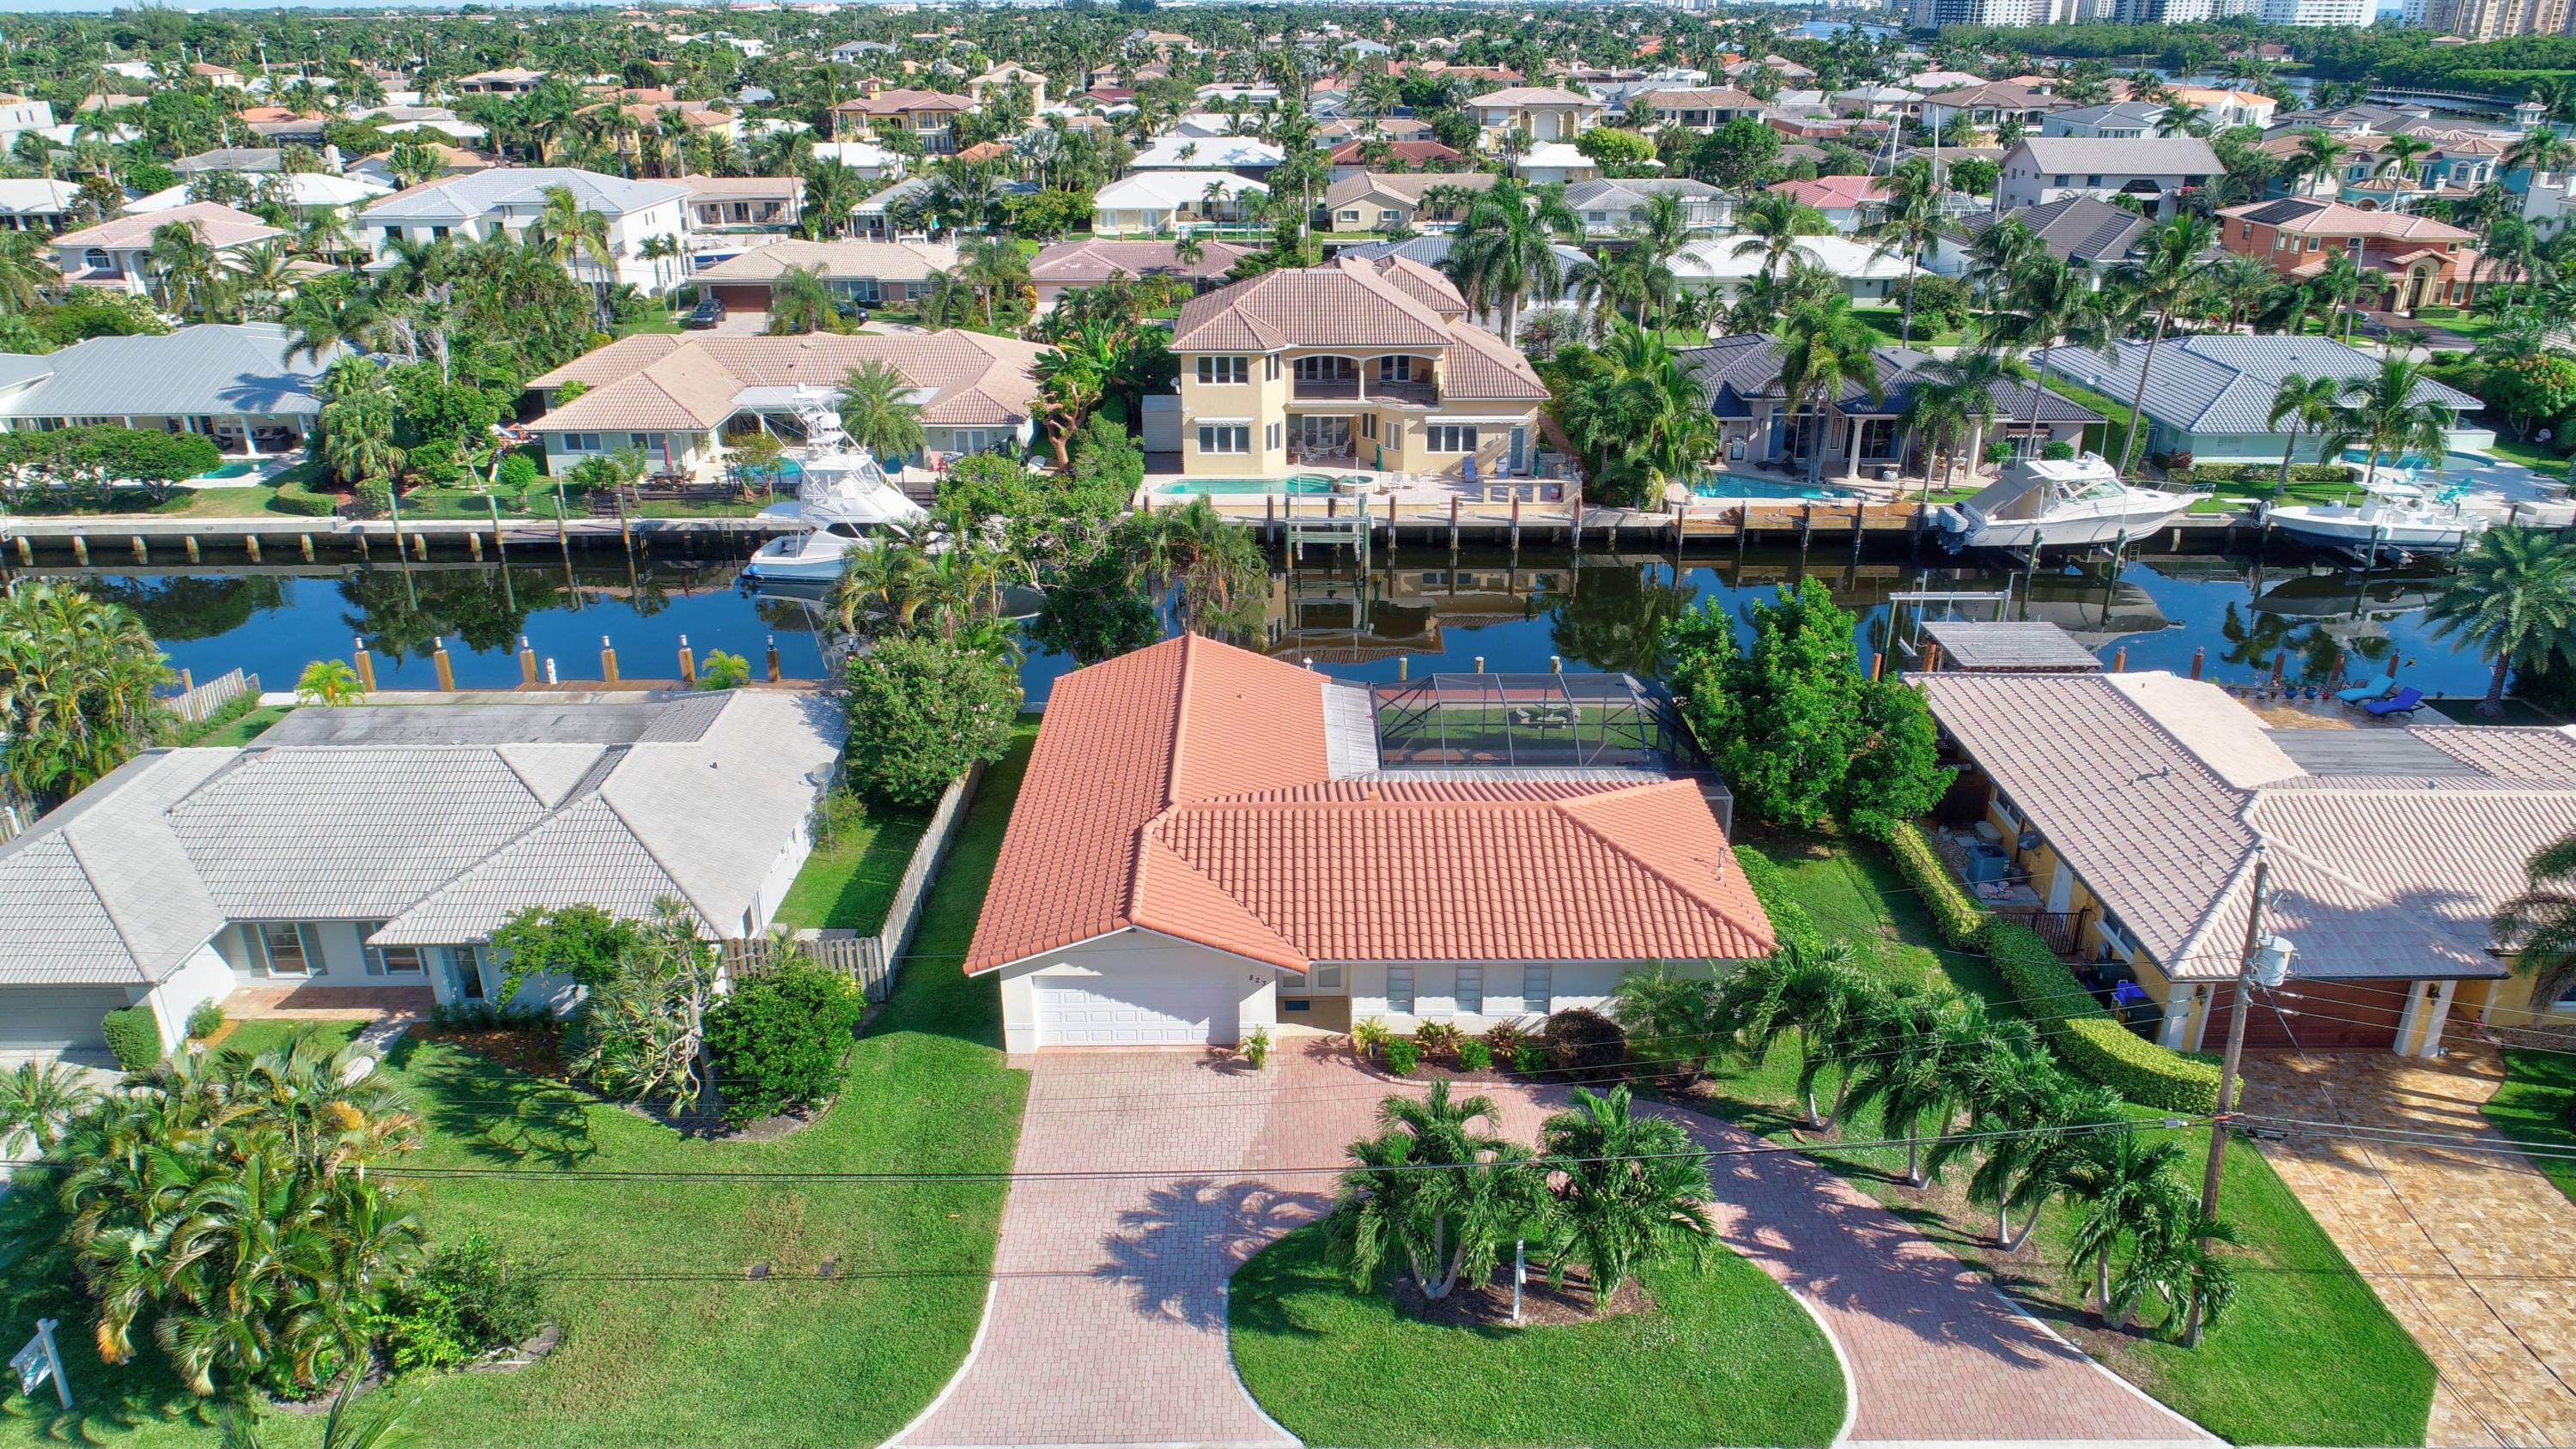 Home for sale in Boca Keys Boca Raton Florida